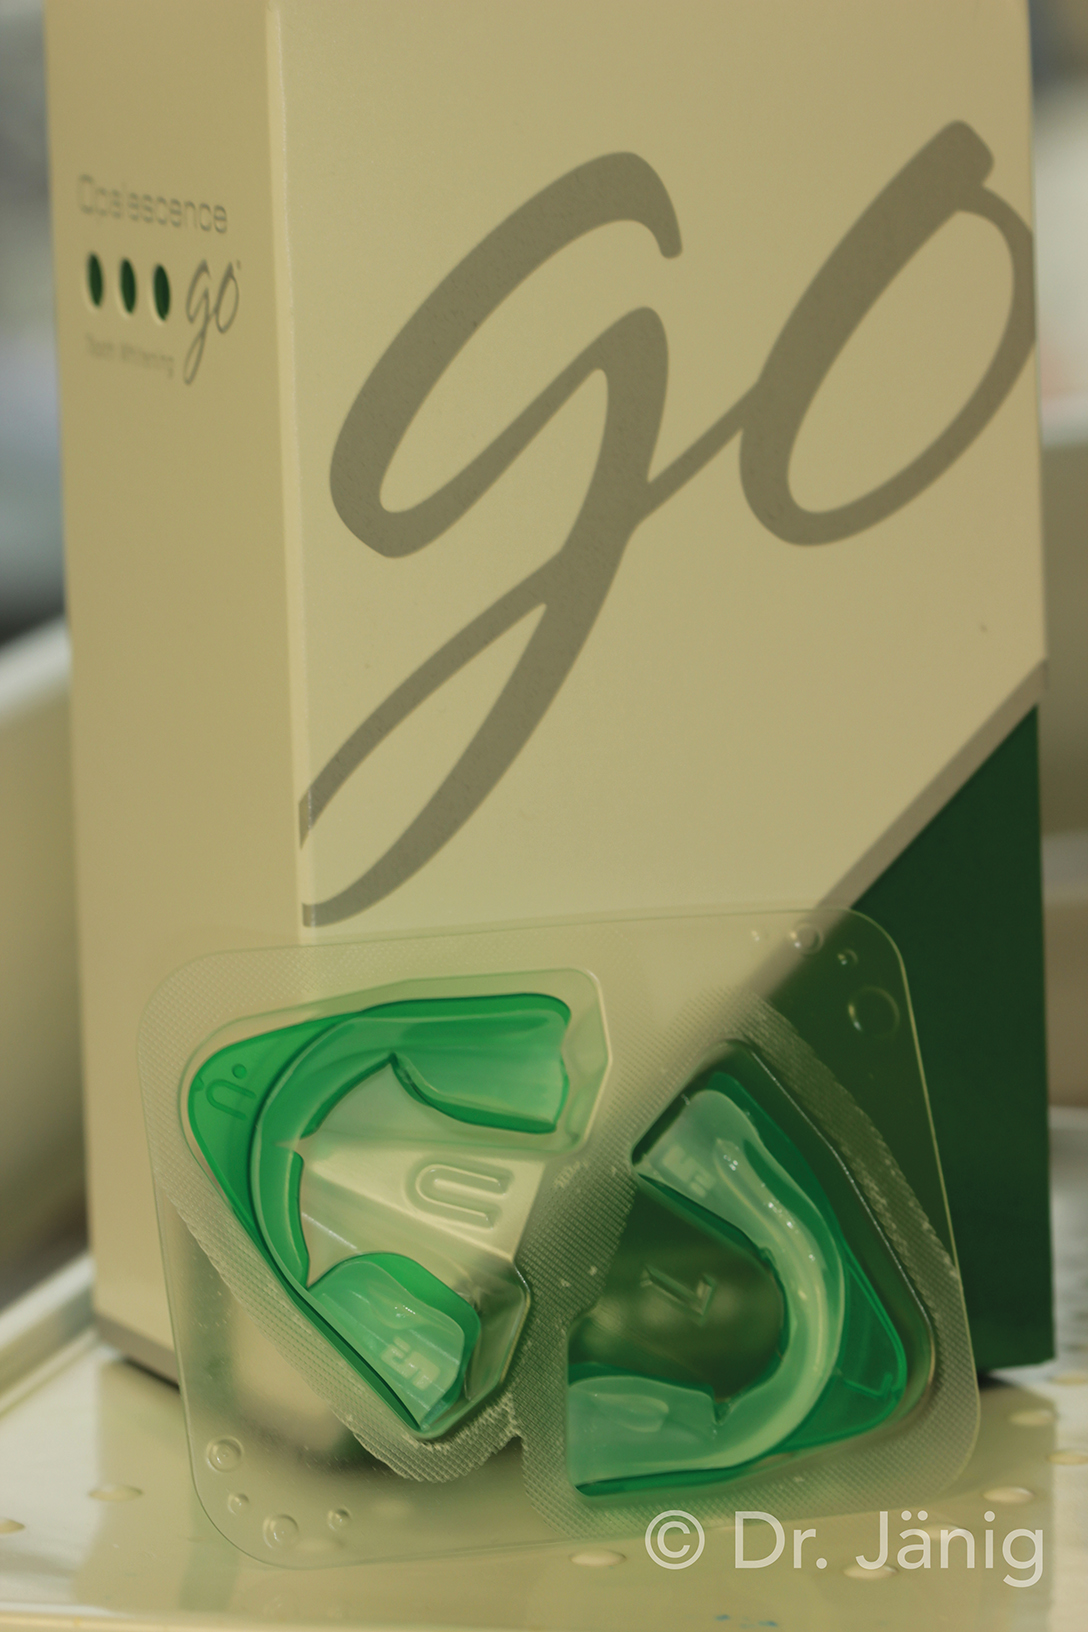 Fig.1_Opalescence Go packaging_©Dr. Jänig